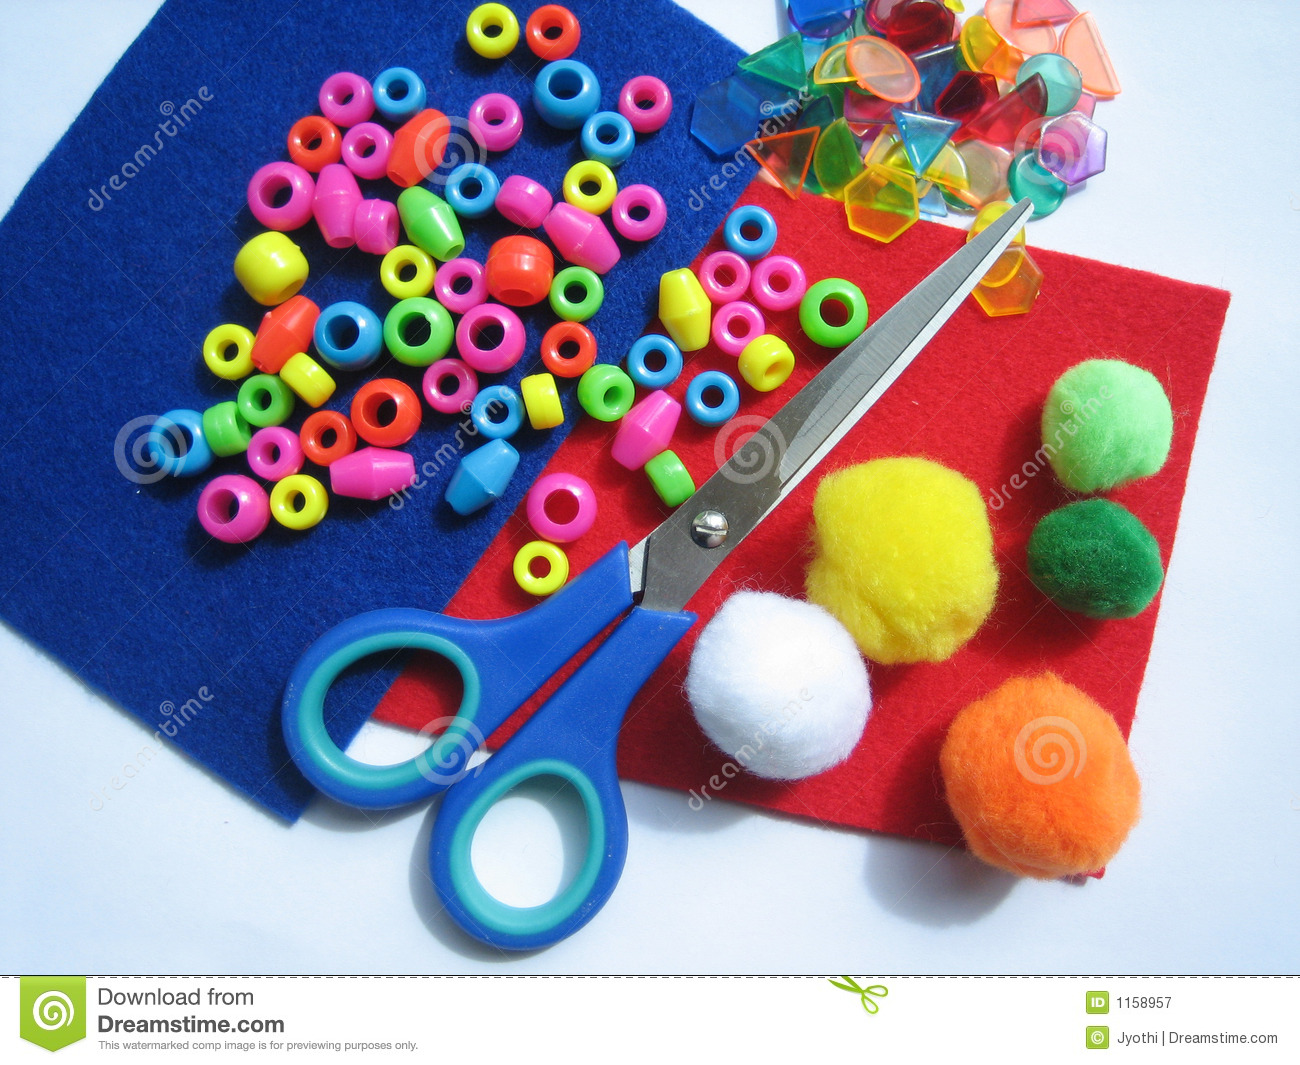 Kids craft items royalty free stock photography image for Crafts for kids com